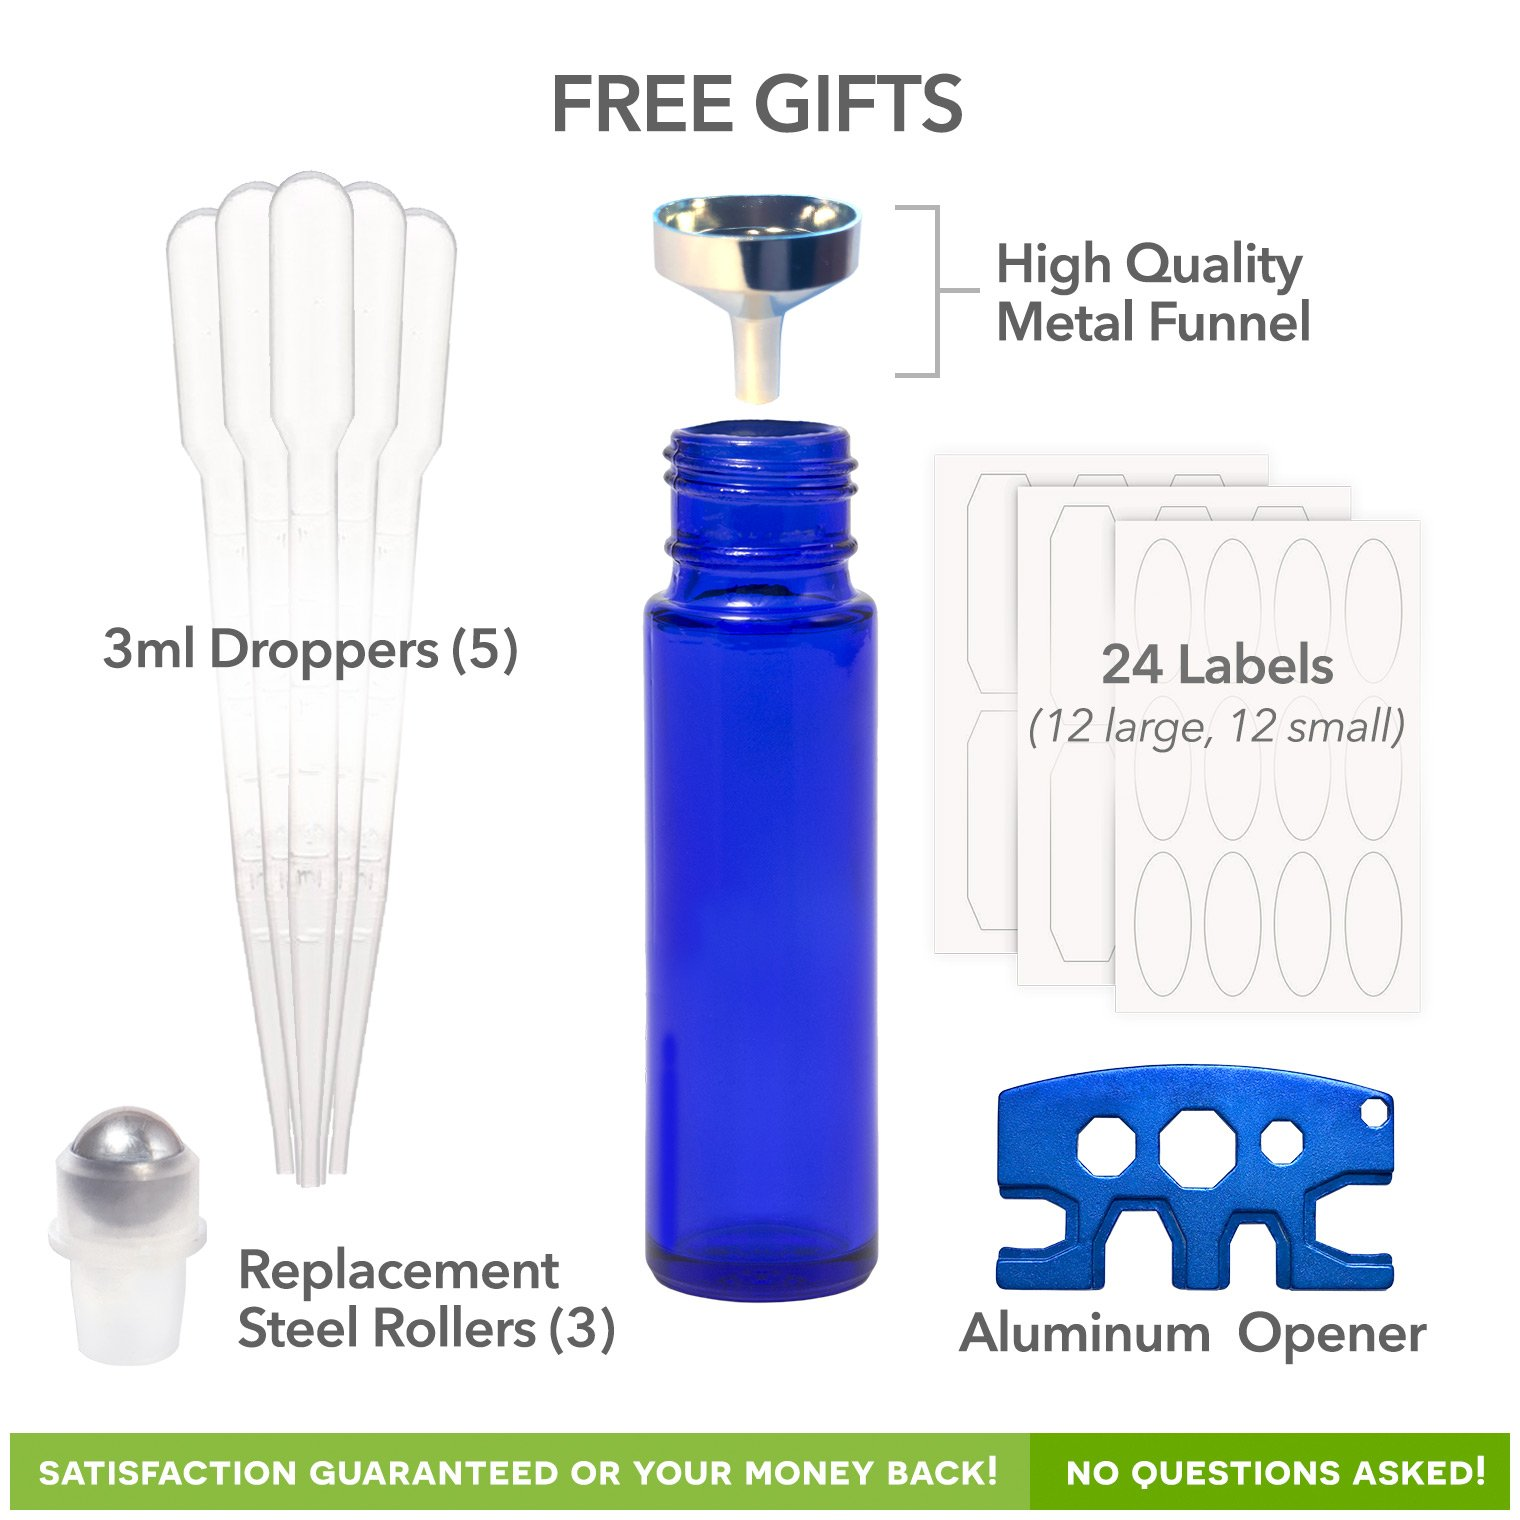 Pure Acres Farm, 12, Cobalt Blue, 10 ml Glass Roll-on Bottles with Stainless Steel Roller Balls. 3 ml Droppers included by Pure Acres Farm (Image #3)